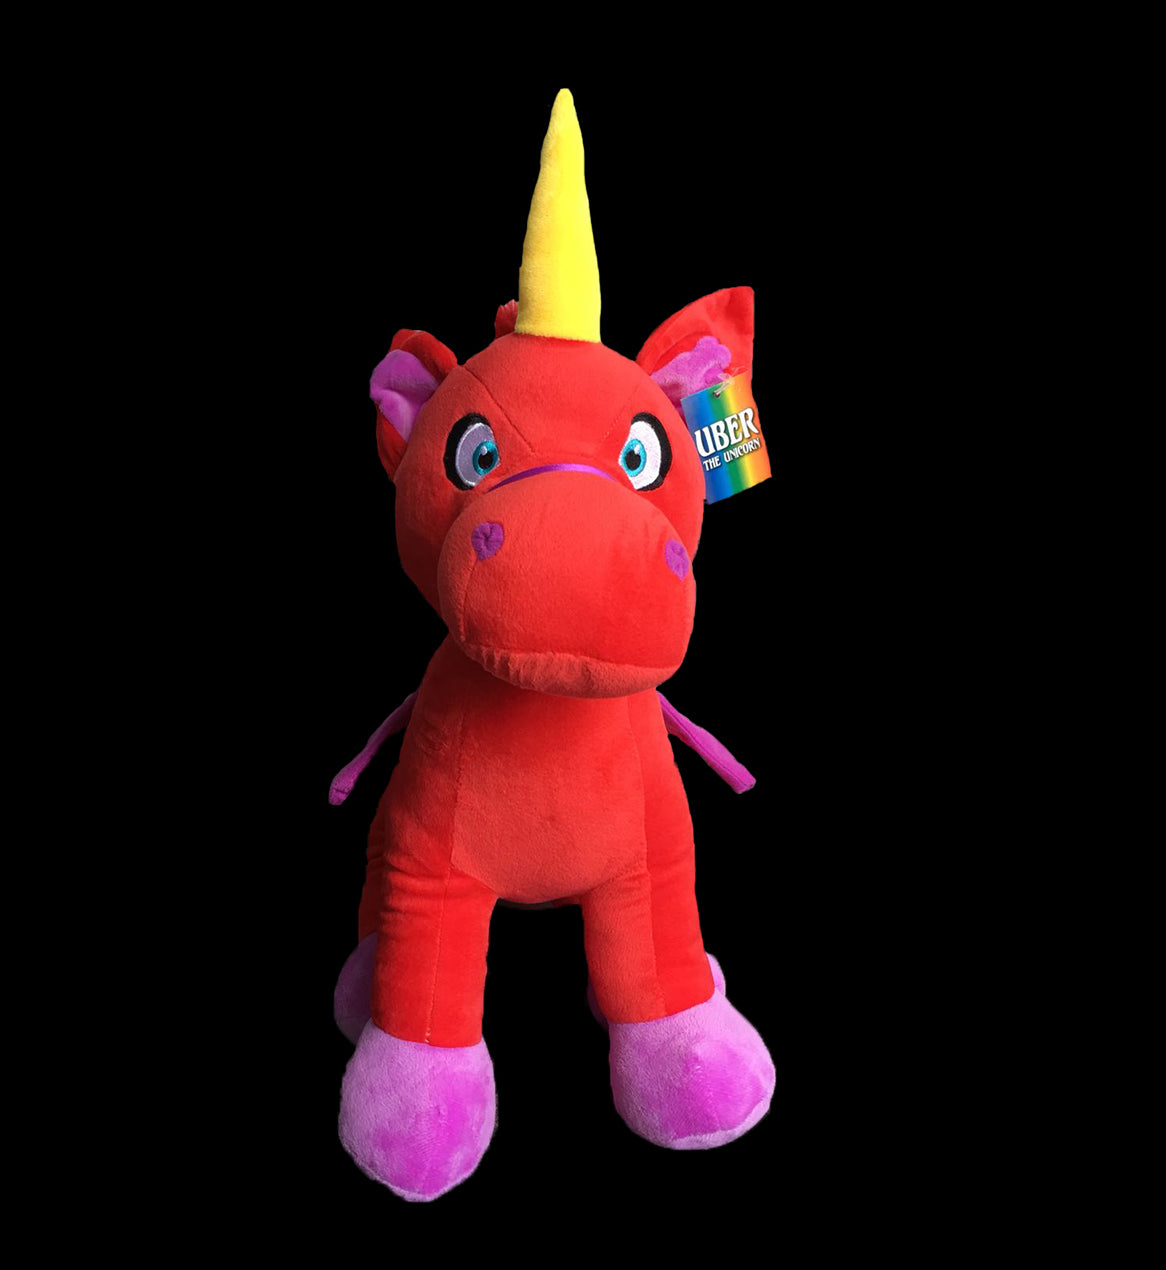 UBER THE UNICORN Stuffed Plush (Red)